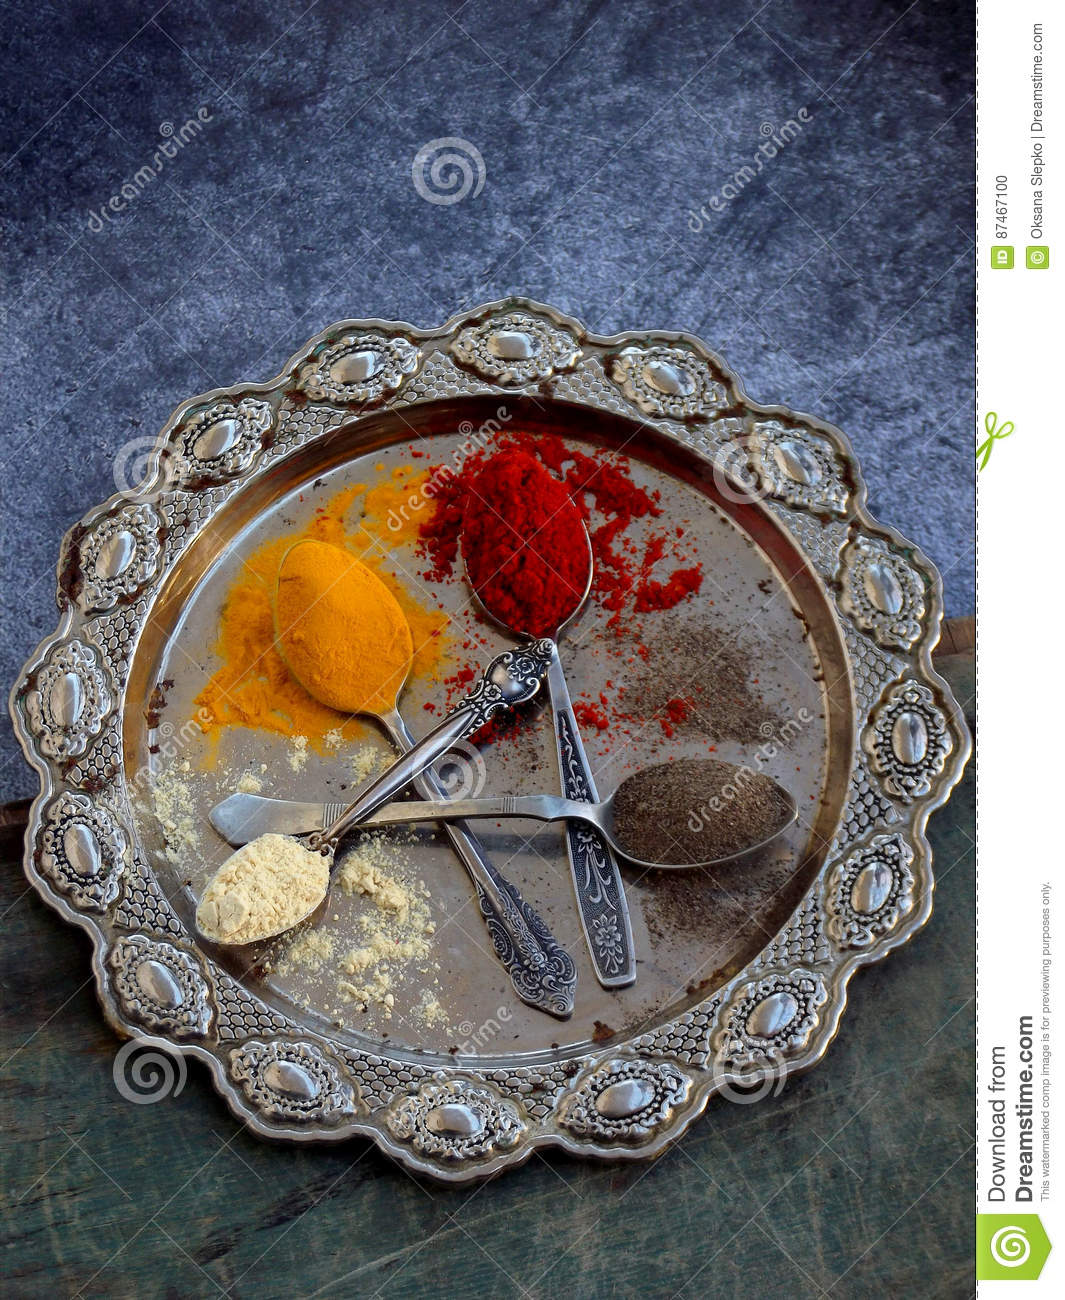 The composition of ground spices in a spoon on a metal dish. Paprika, turmeric, ginger, black pepper. Top view